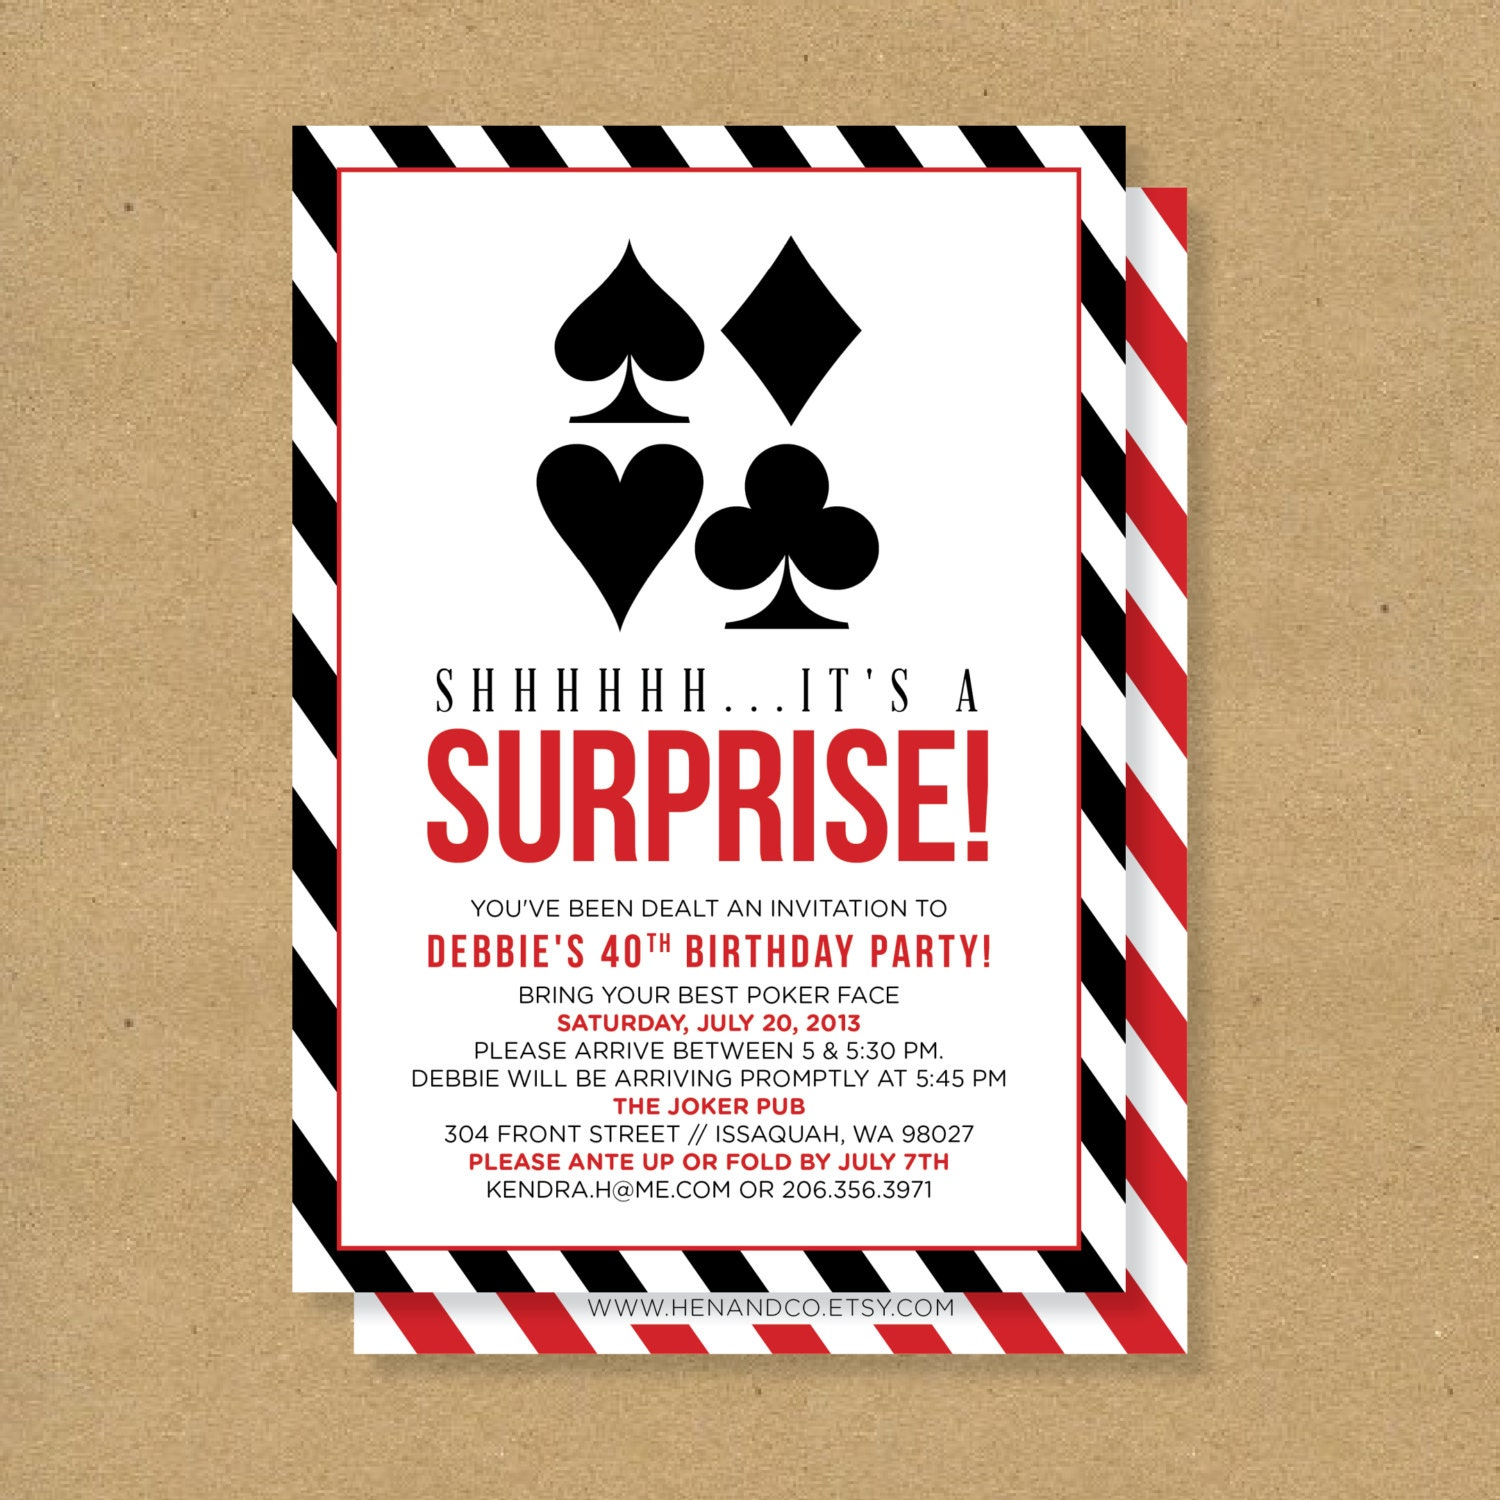 Casino night birthday invitation wording new jersey sports casino night birthday invitation wording stopboris Choice Image